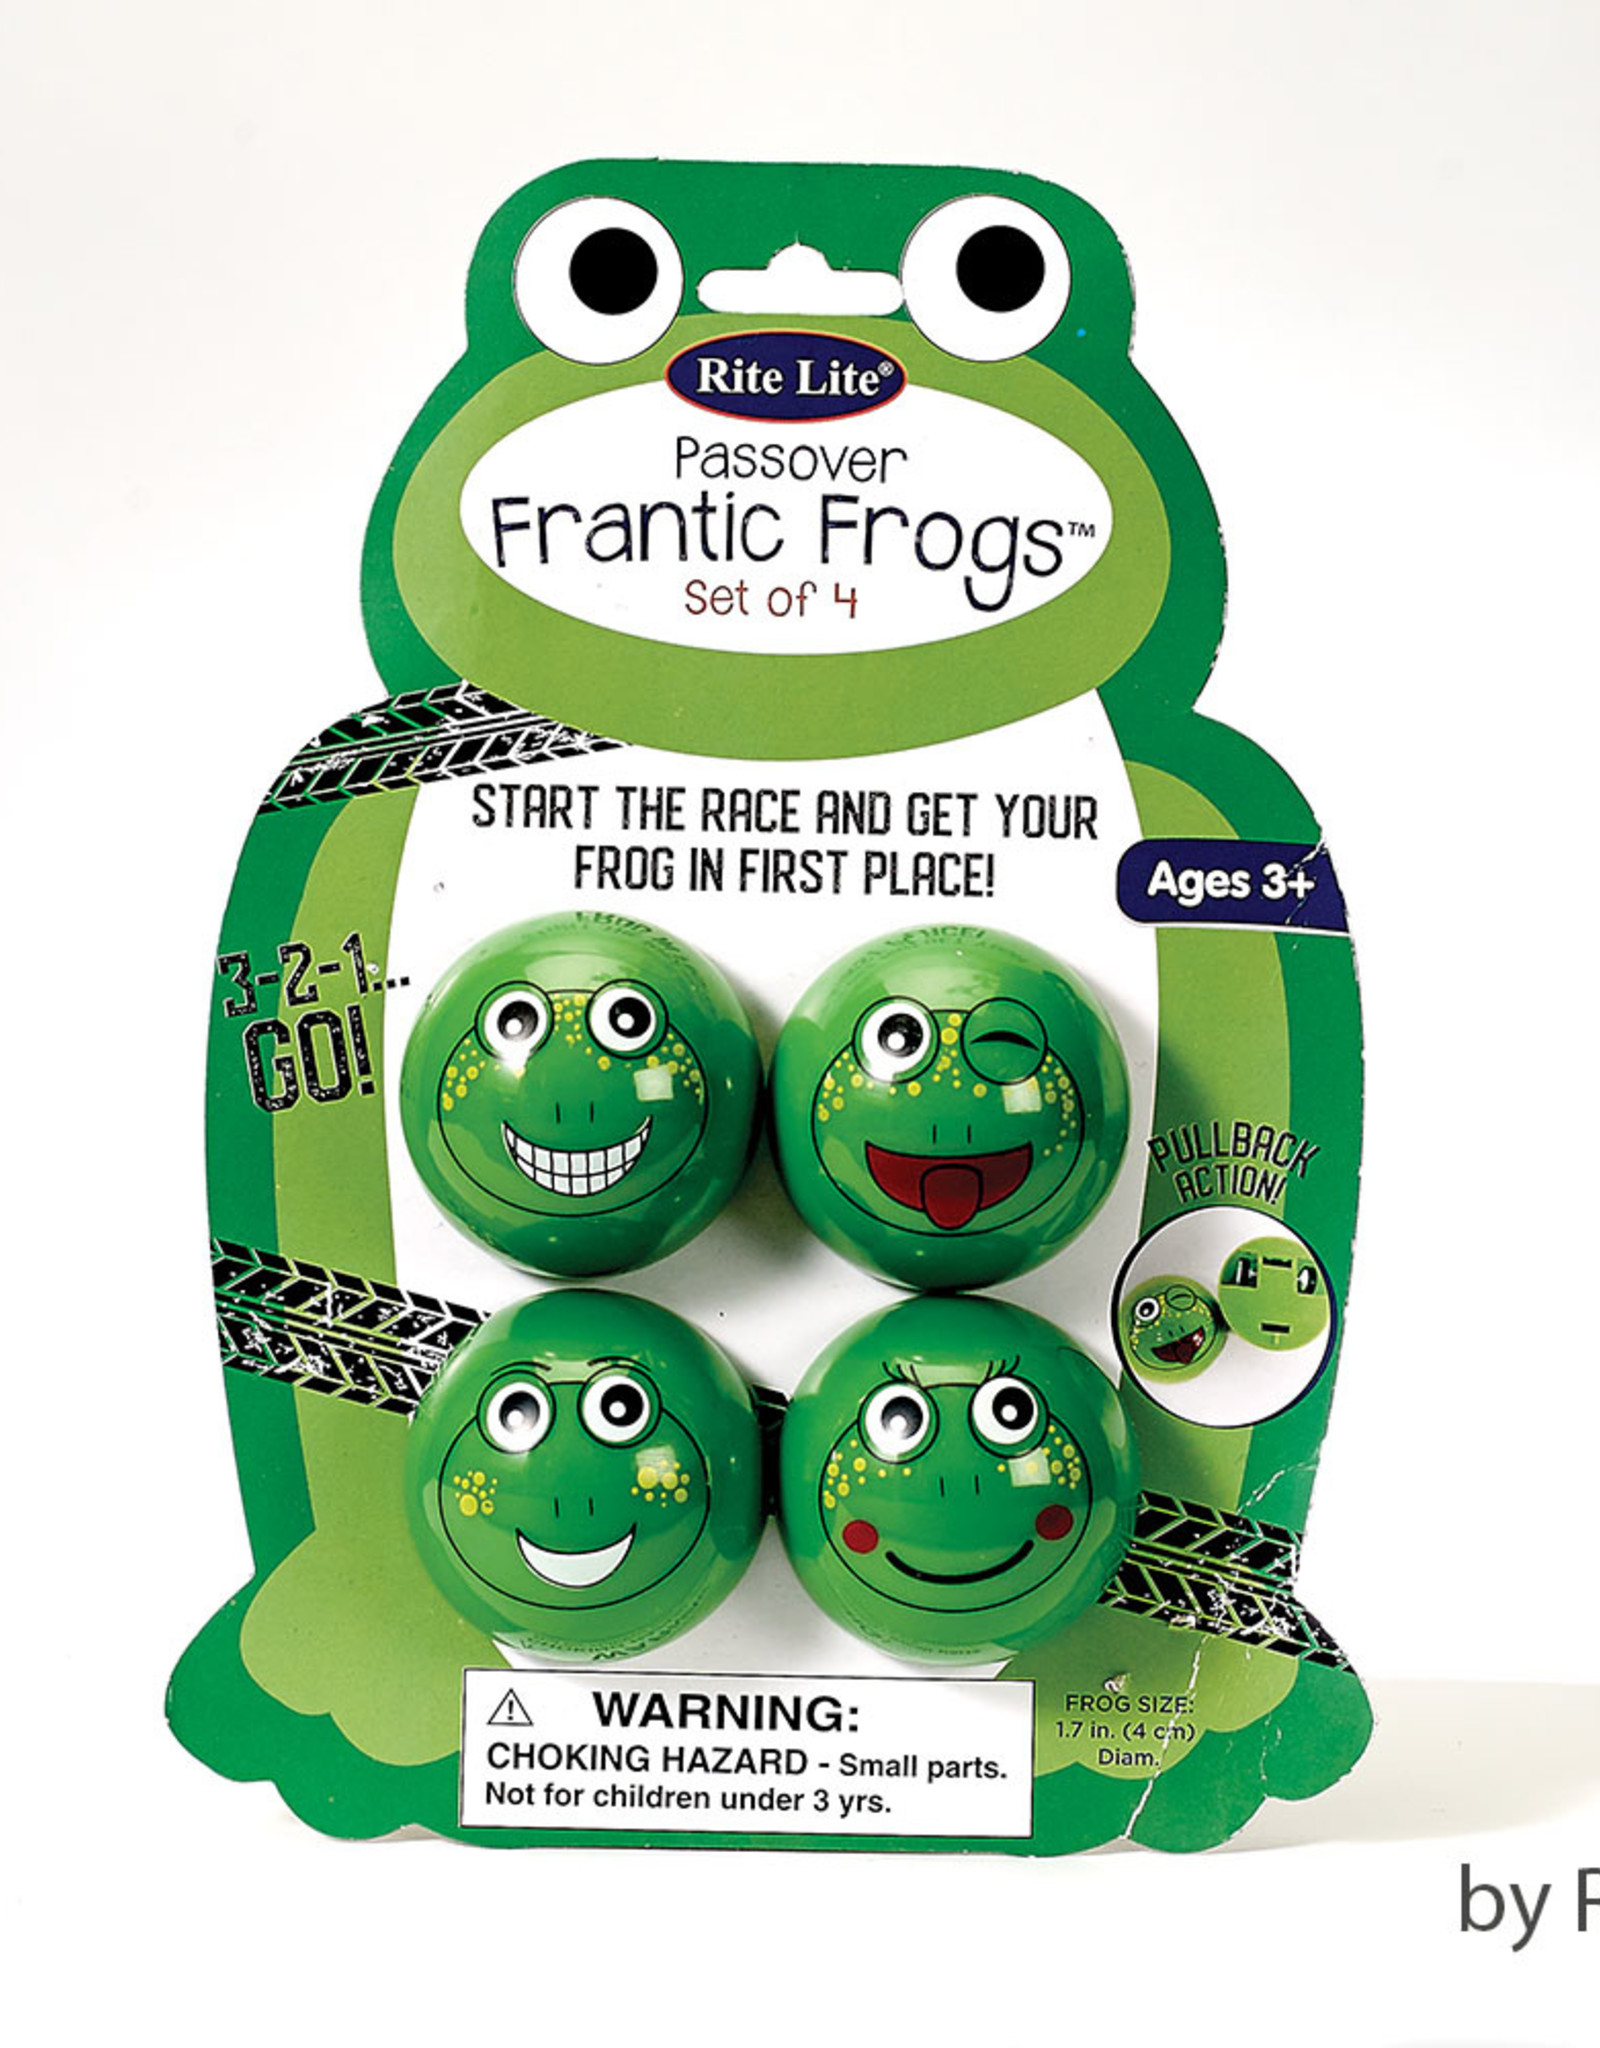 Passover ''Frantic Frogs'', set of 4